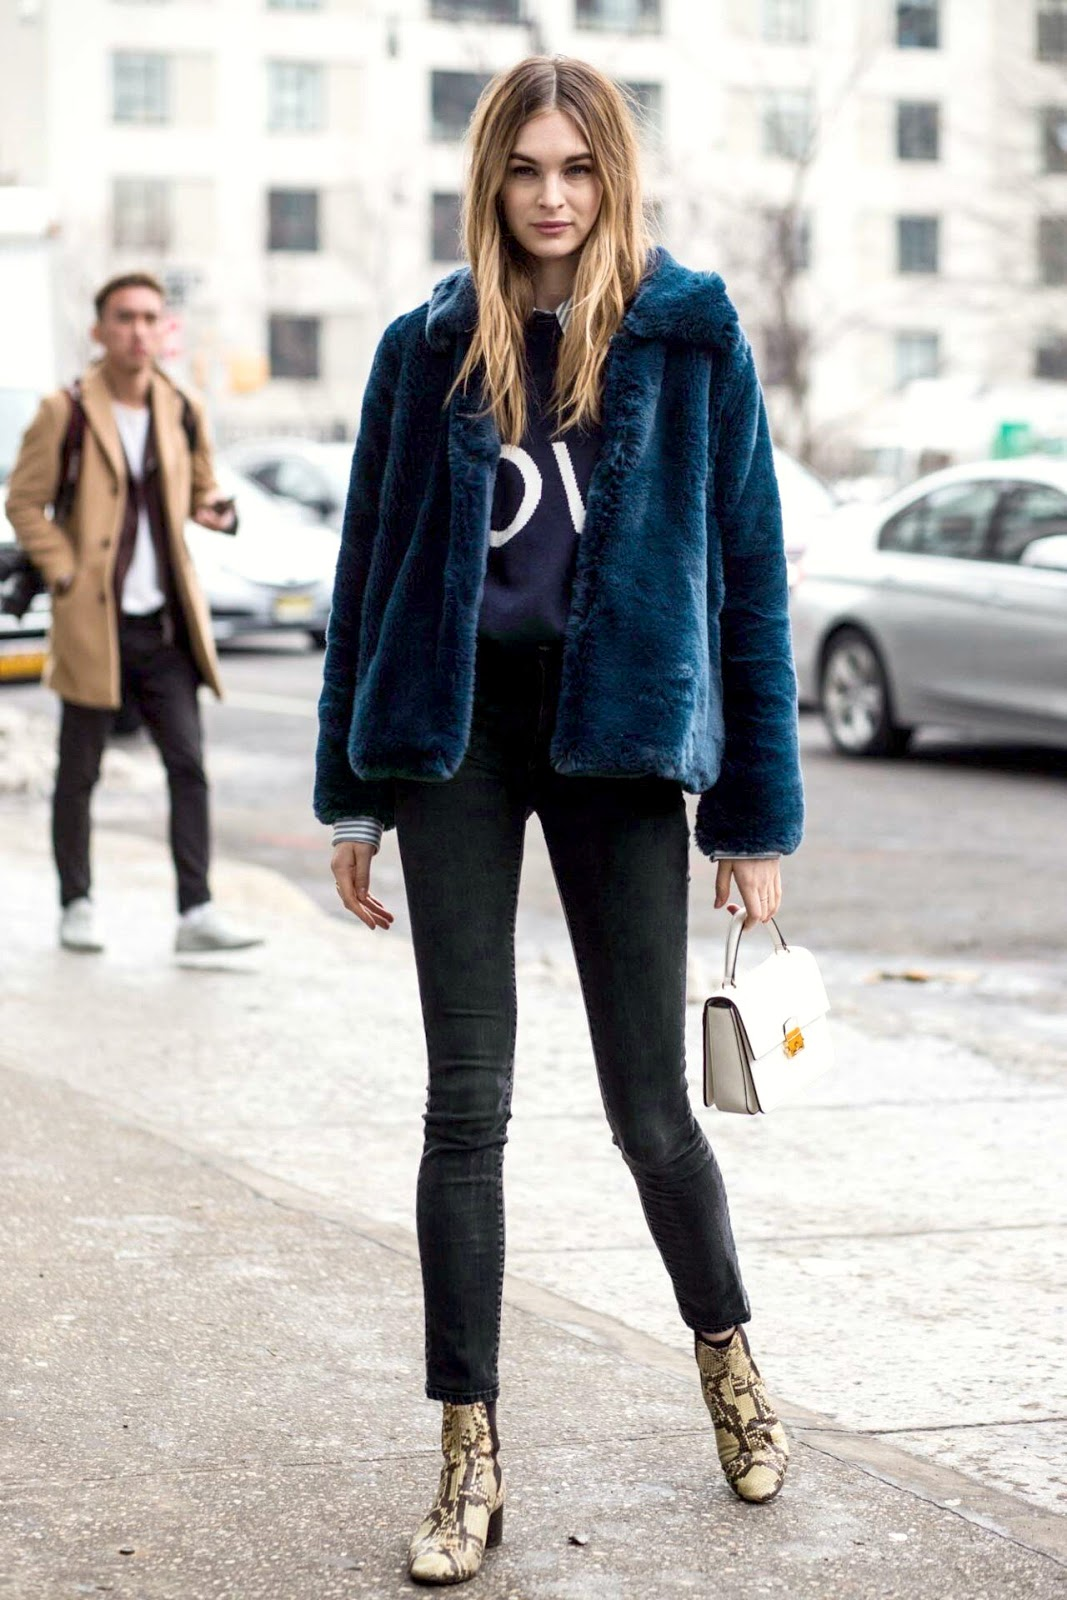 Winter Style — Model in Blue Faux Fur Coat, Graphic Sweater, Black Jeans, and Snake-Print Ankle Boots